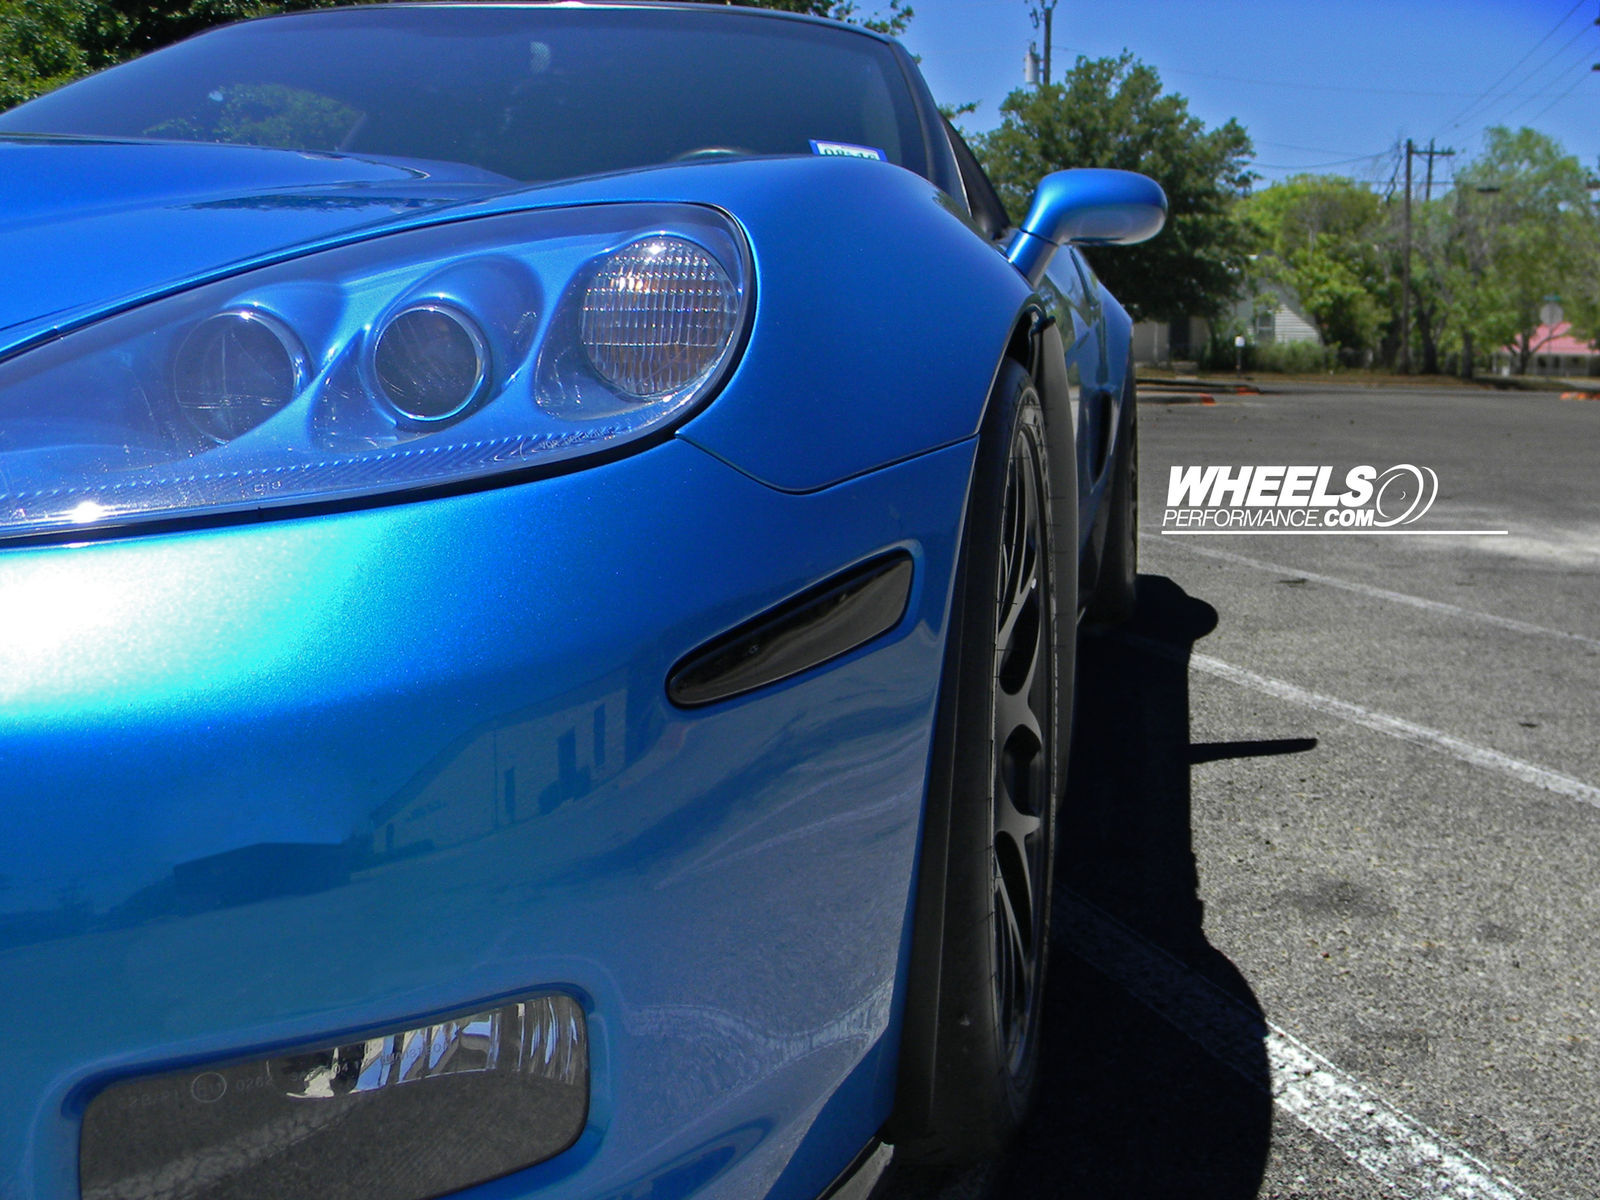 2009 Chevrolet Corvette | OUR CLIENT'S CHEVROLET CORVETTE C6 ZR1 WITH 19/20